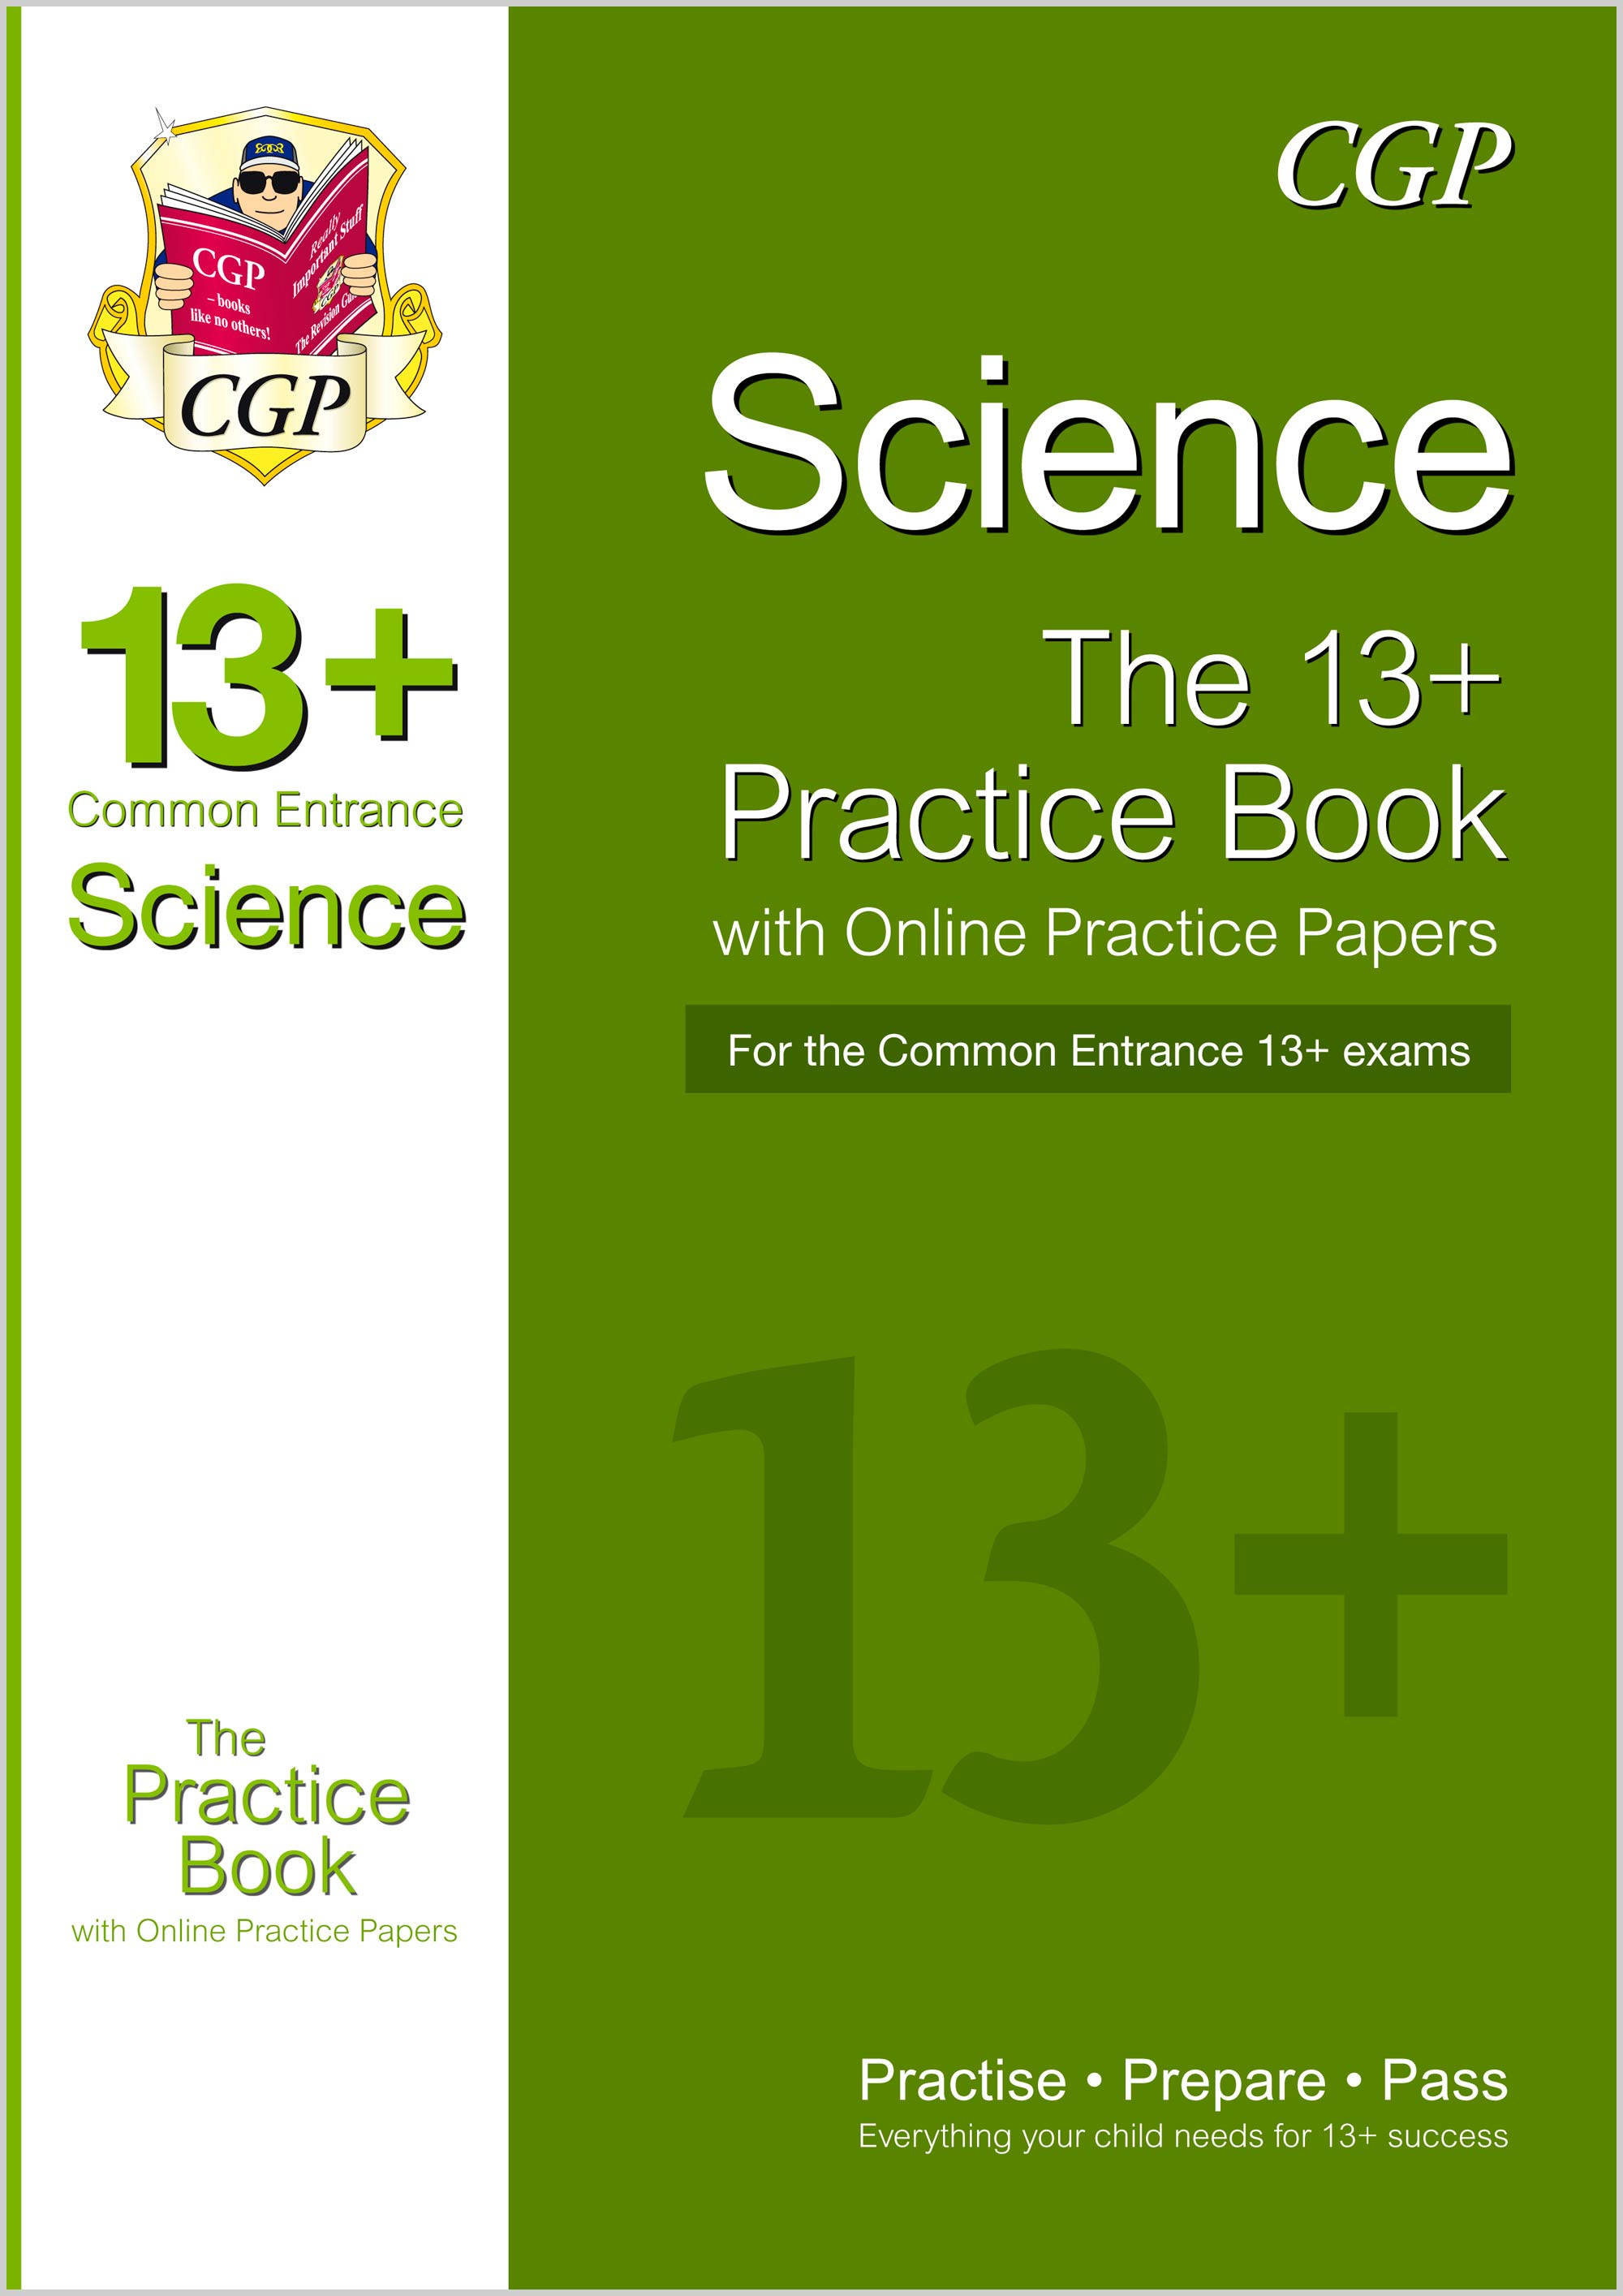 SIQT1 - New 13+ Science Practice Book for the Common Entrance Exams with Answers & Online Practice P